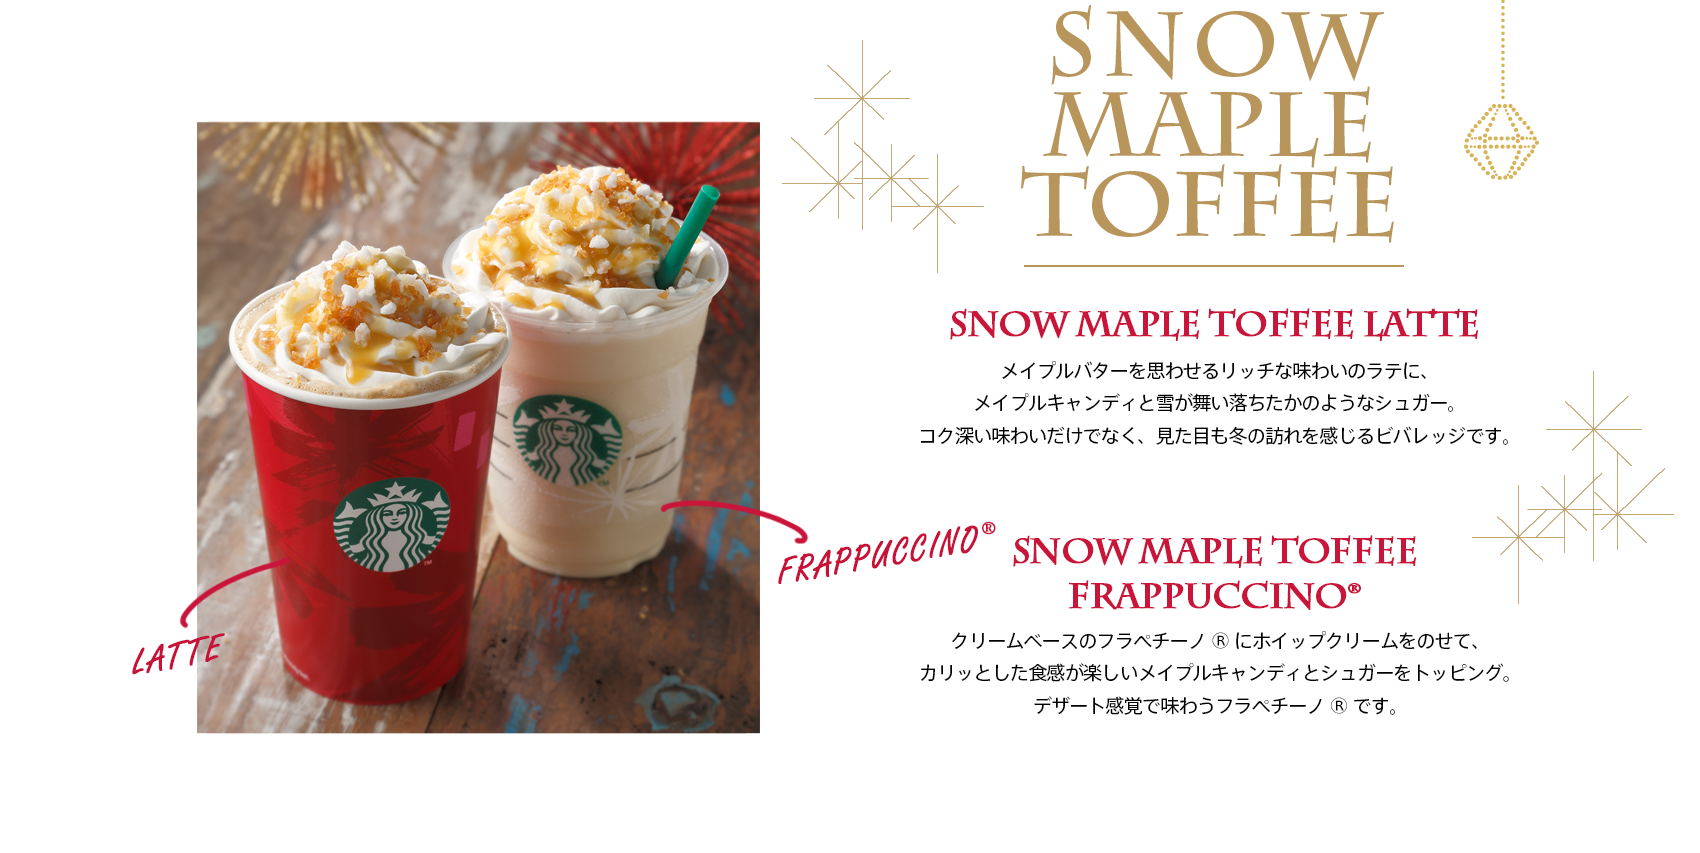 SNOW MAPLE TOFFEE